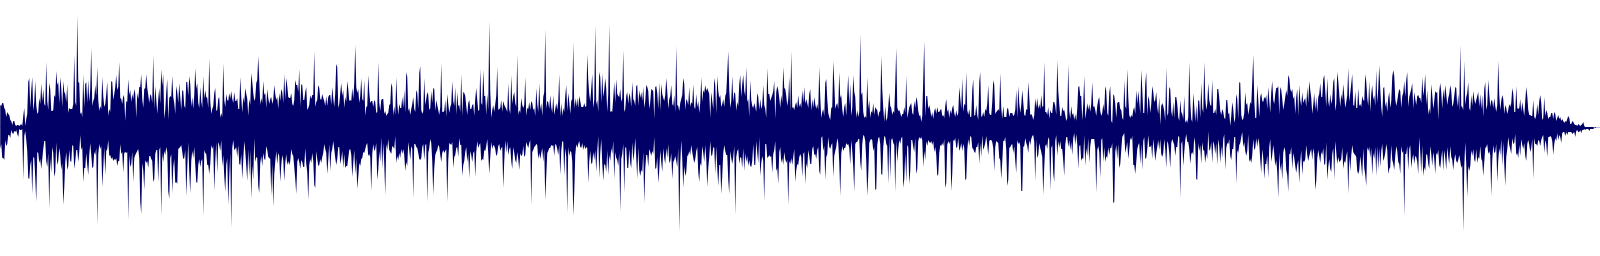 waveform of track #132176